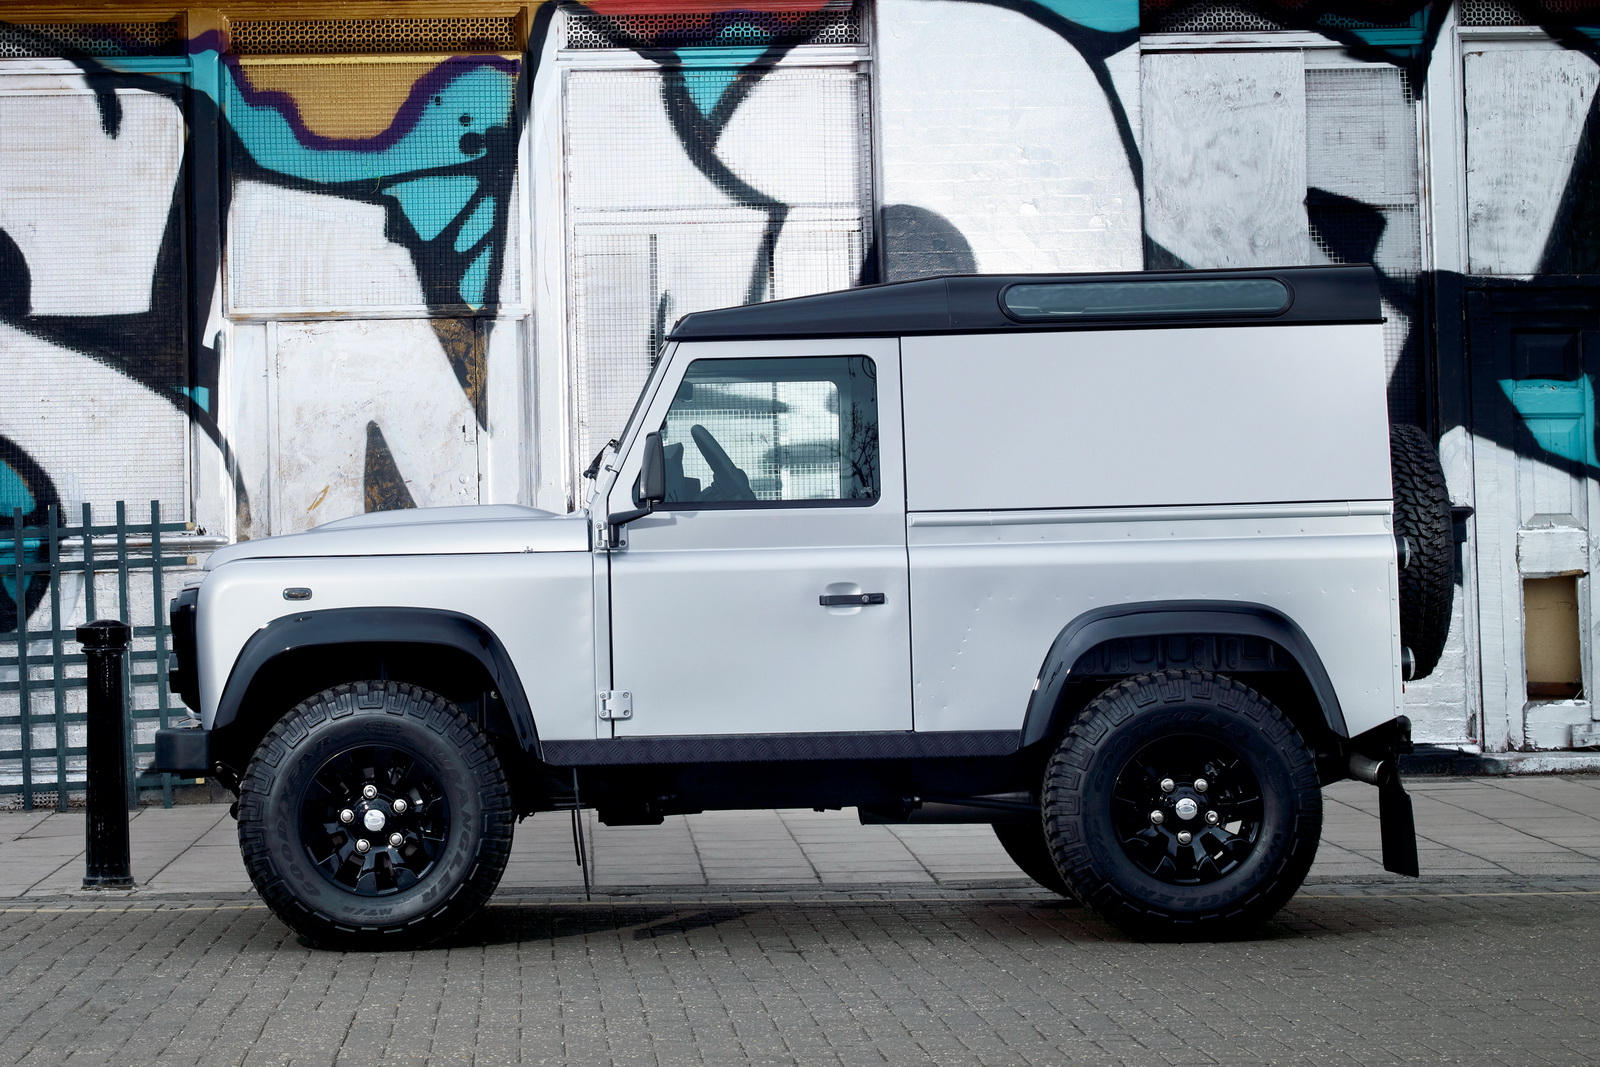 2011 Land Rover Defender Concept 3 2011 Concept Defender to Be Launched Soon by Land Rover